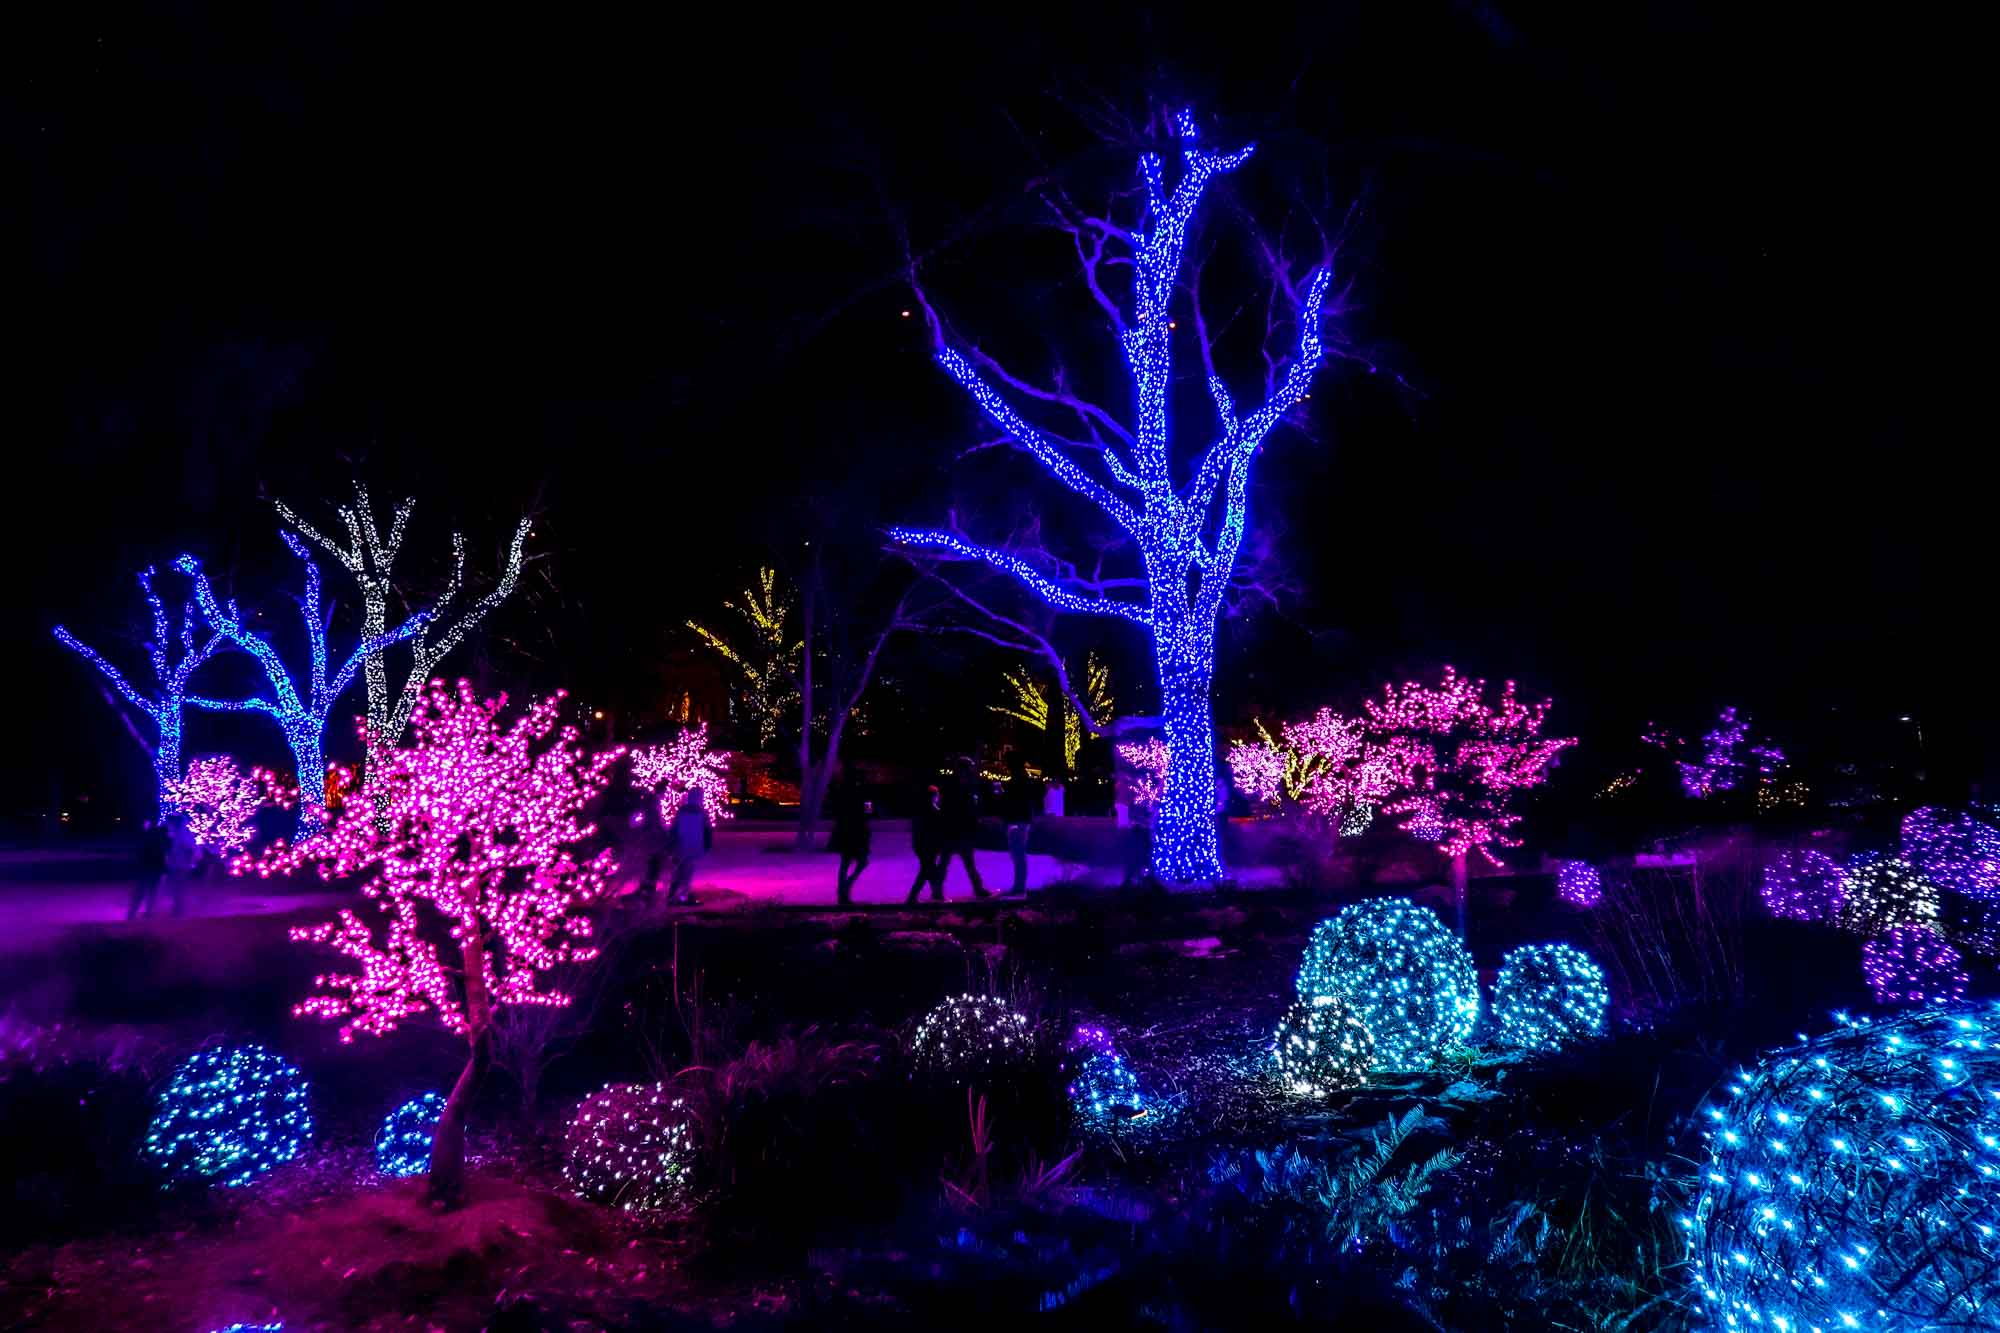 Trees and large orbs covered in blue, purple, and pink Christmas lights at night